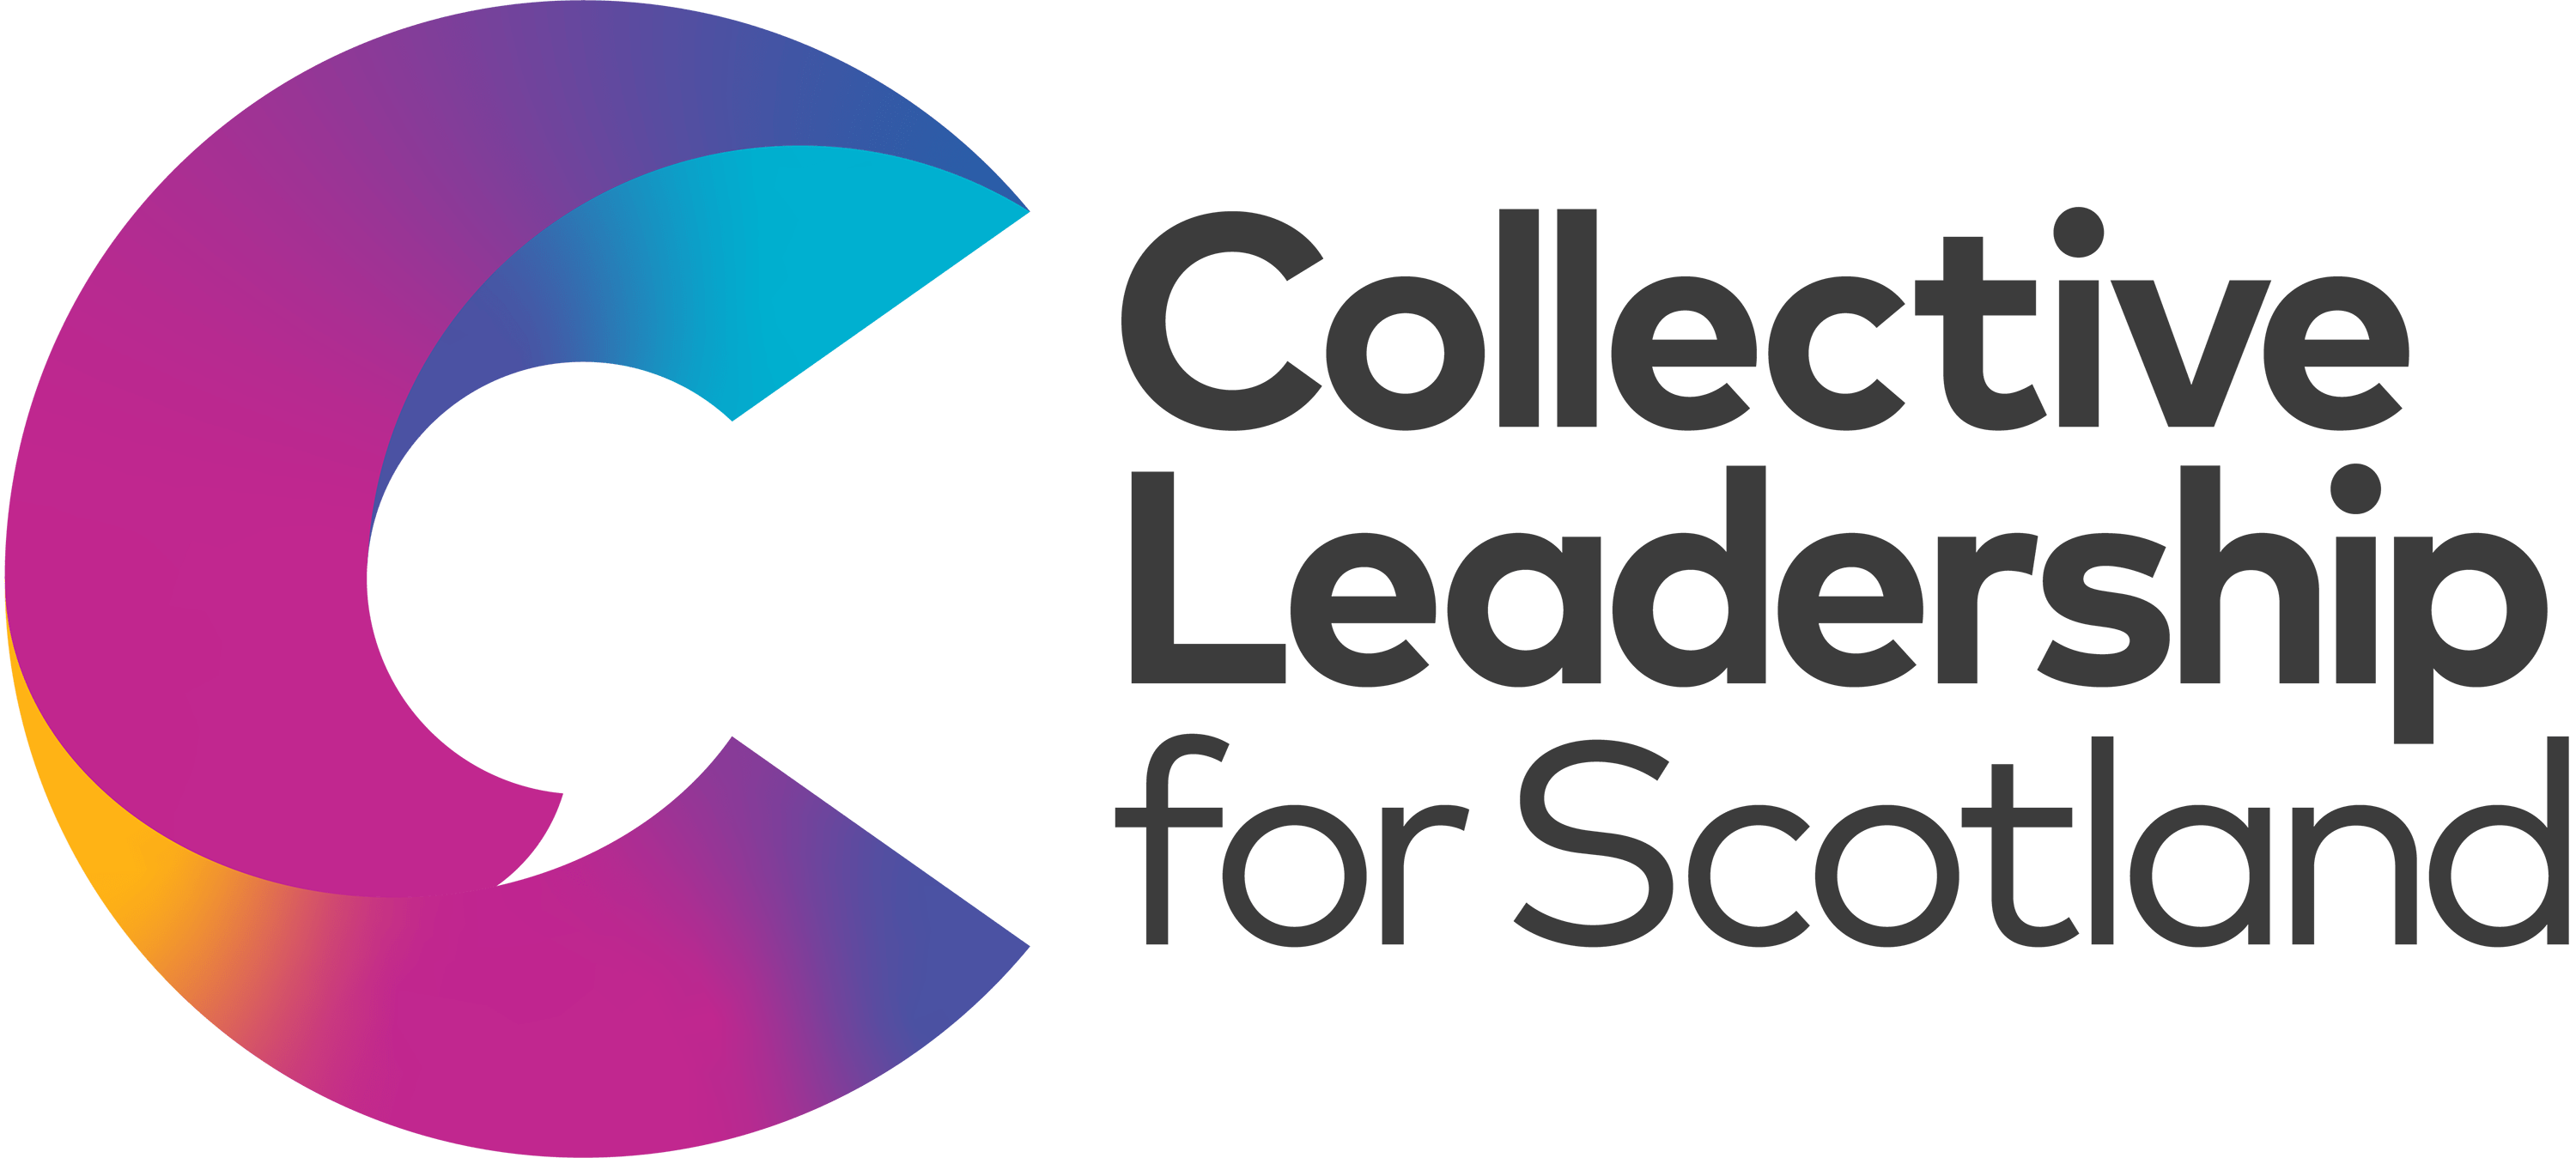 Collective Leadership for Scotland